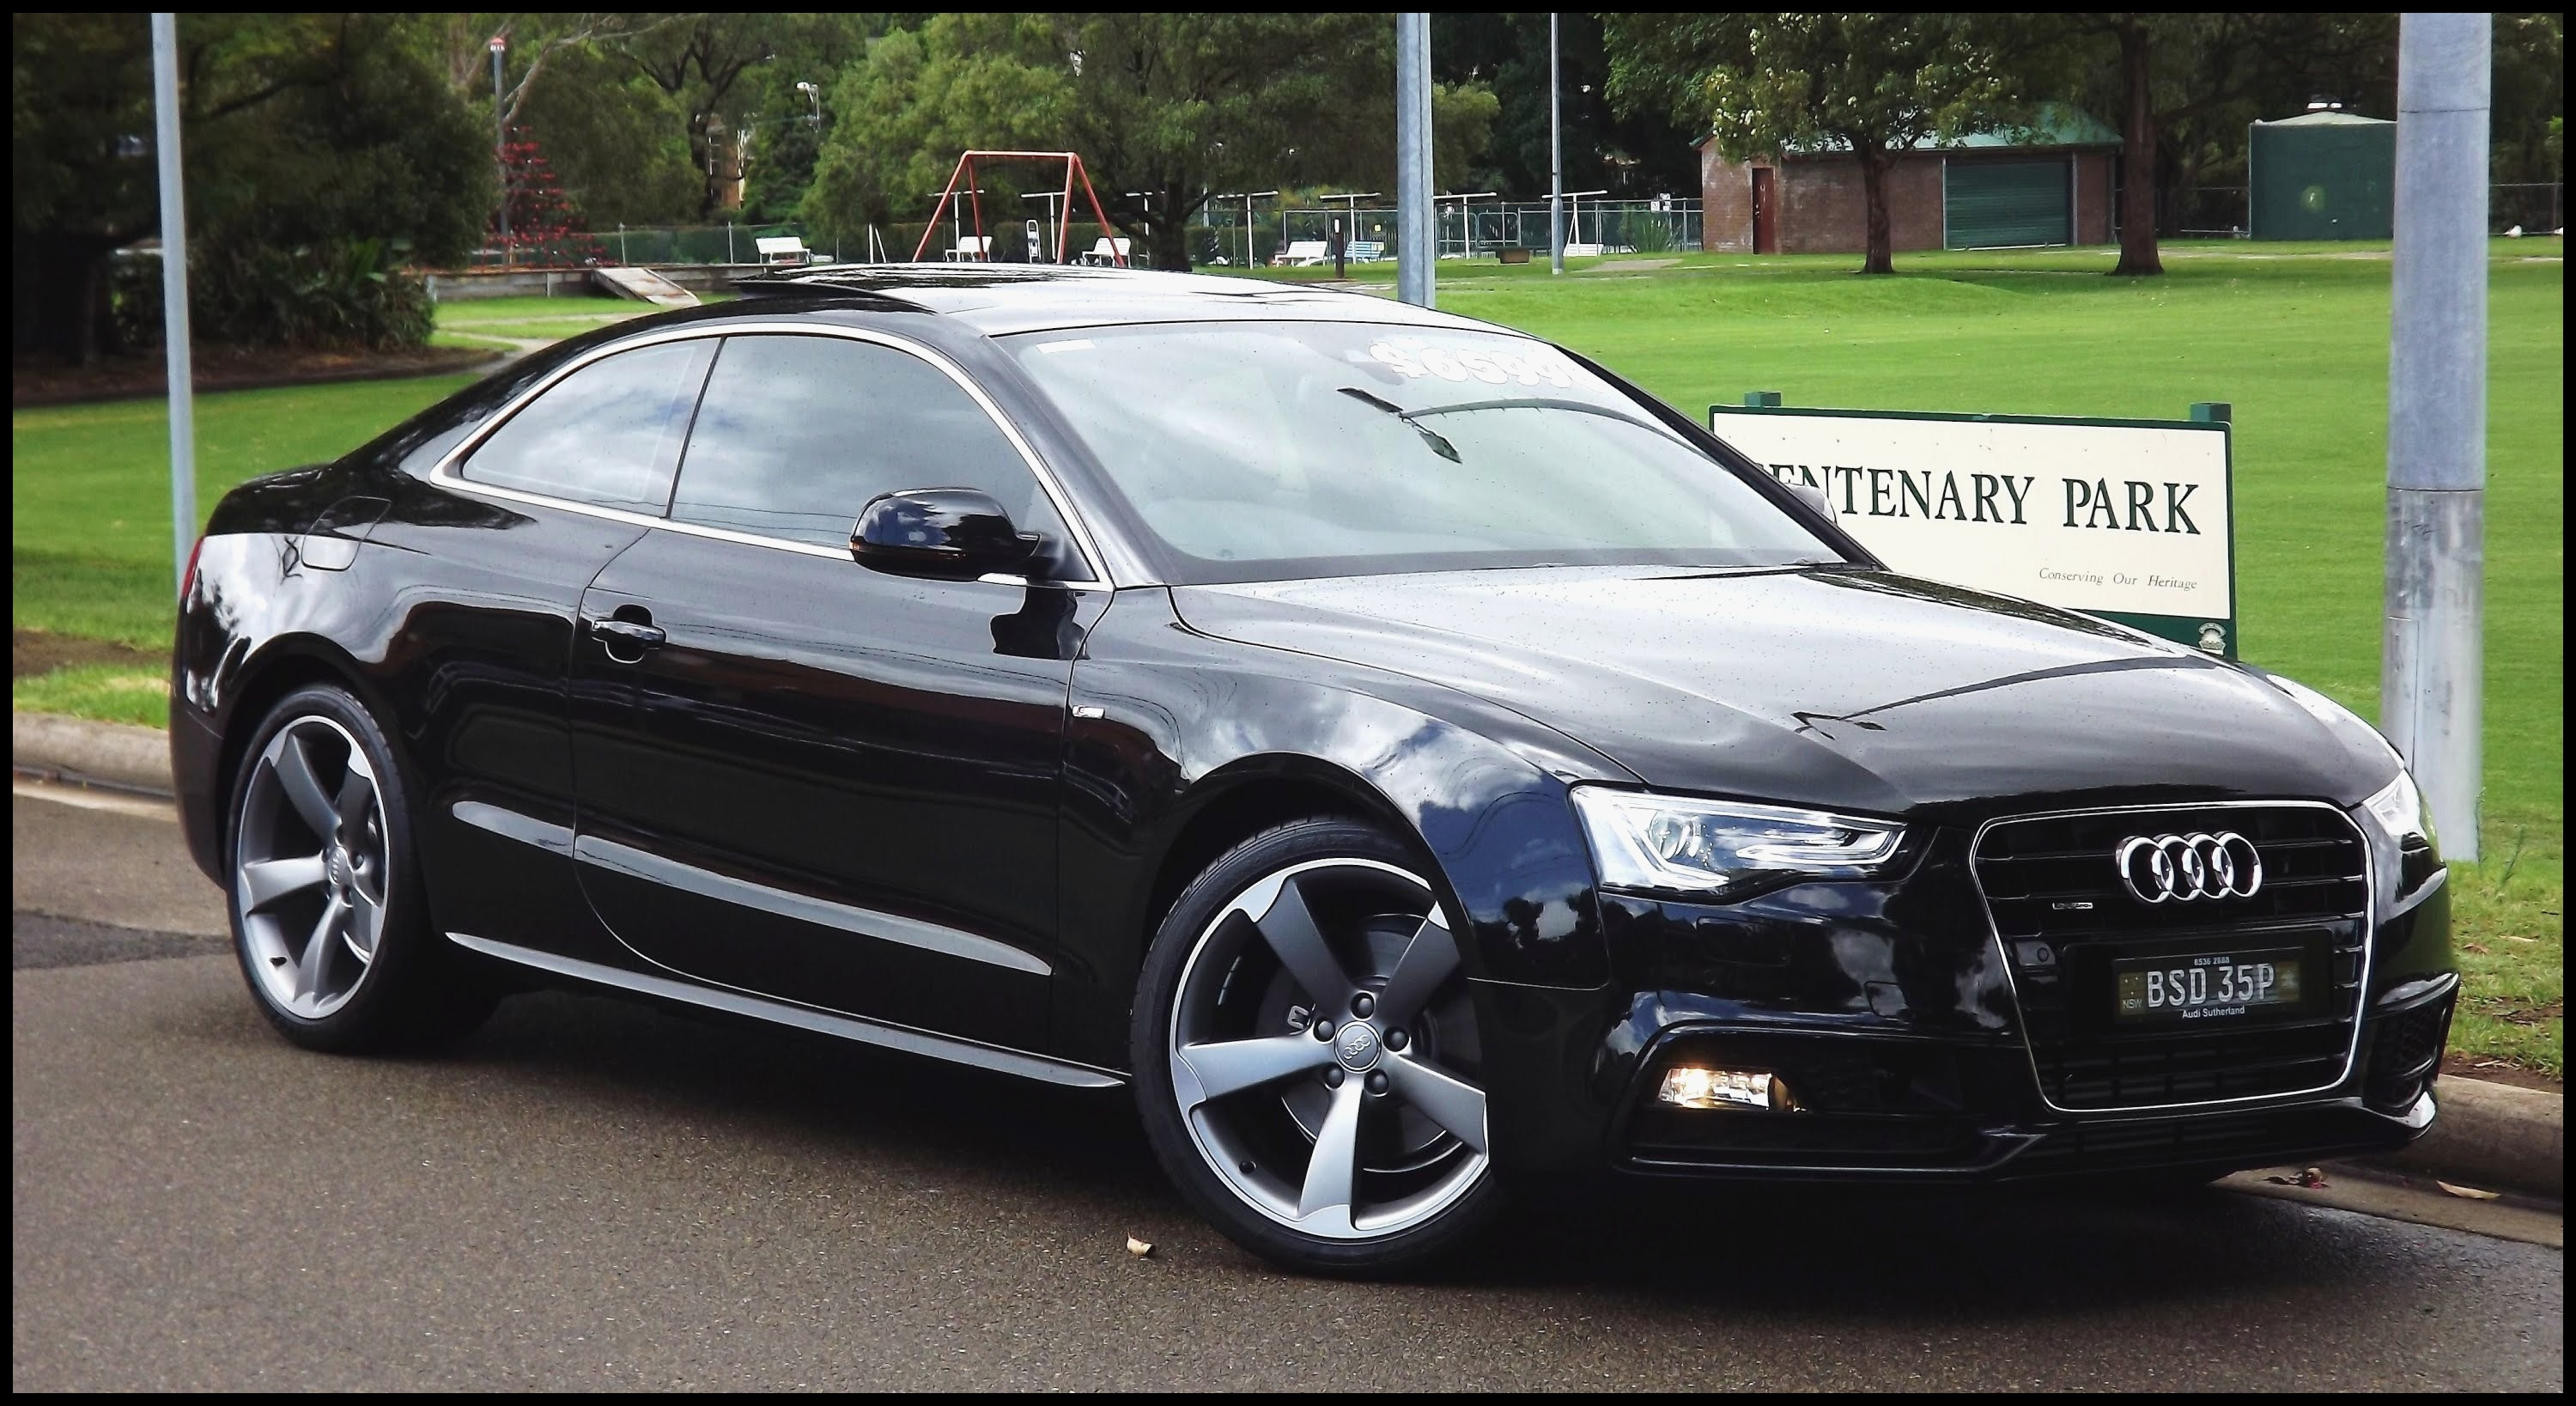 2019 Audi A3 Beautiful Audi Parent Pany Awesome Funny 2012 Audi A5 3 0d Quattro S